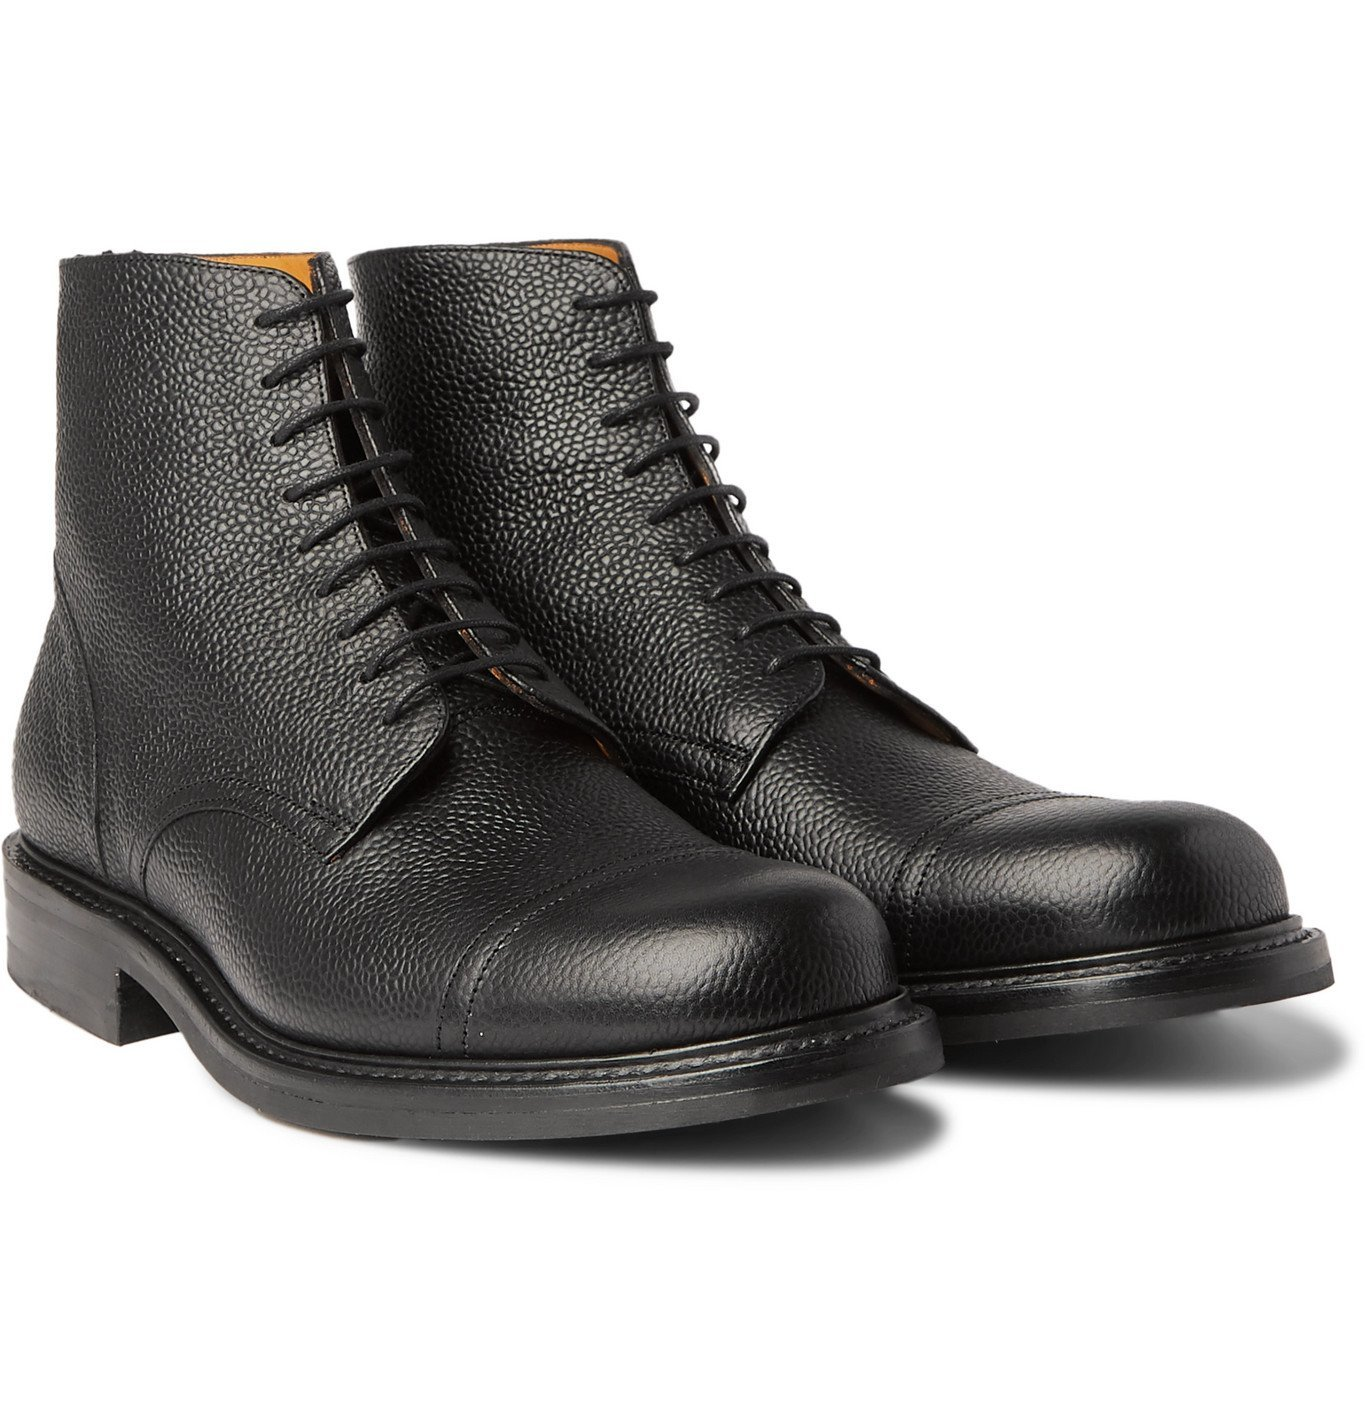 Photo: Mr P. - Heath Full-Grain Leather Chore Boots - Black